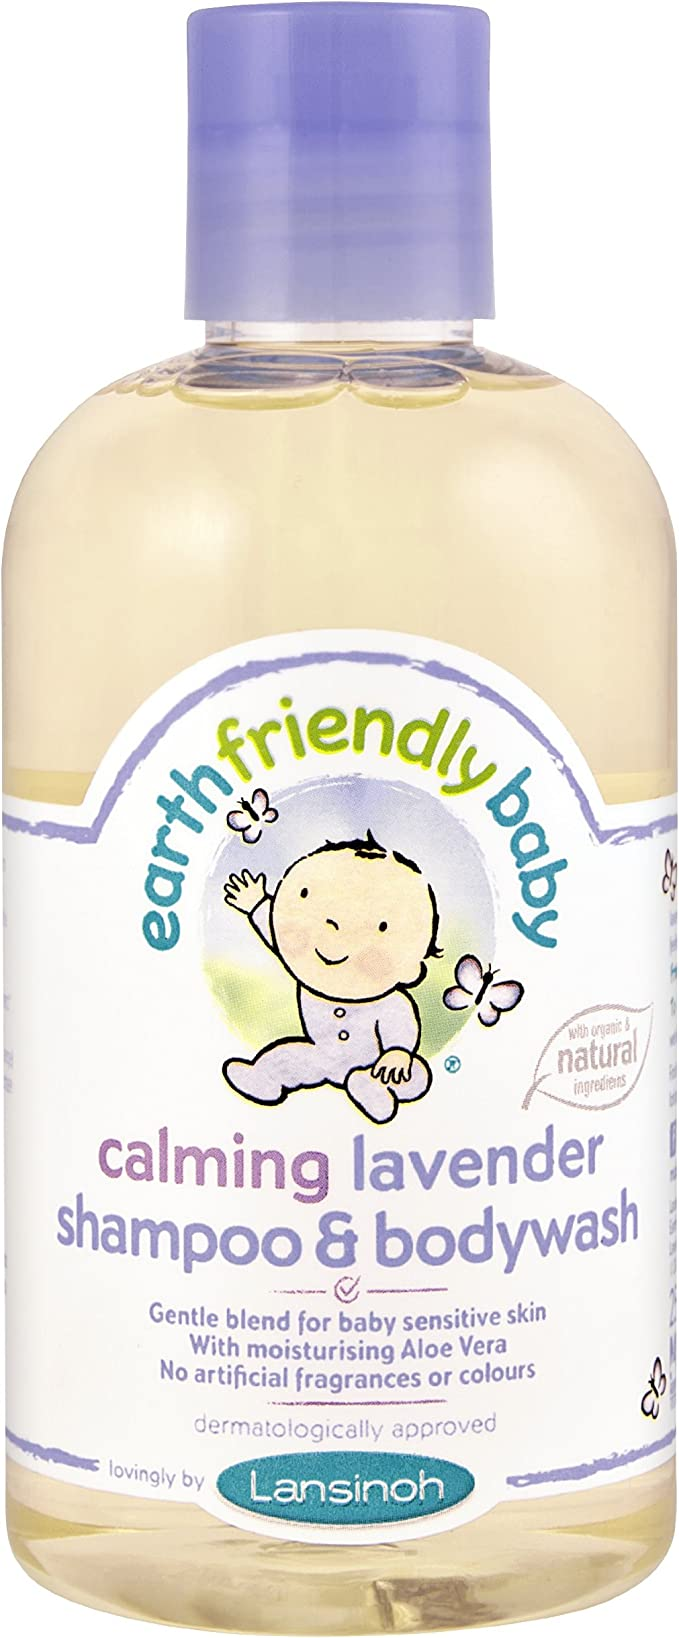 Earth Friendly Baby Calming Lavender Shampoo And Bodywash Amazon Co Uk Health Personal Care